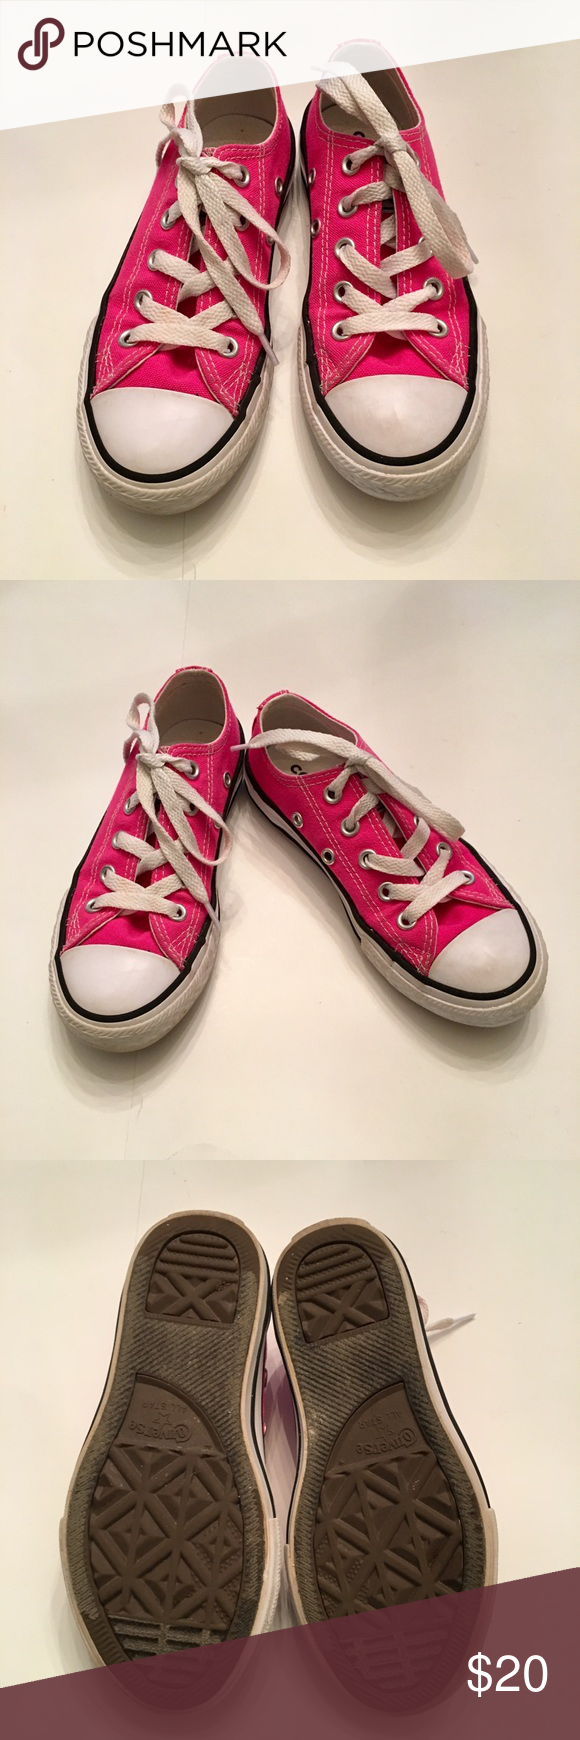 b1539f777706 Converse sneakers Darling Converse sneakers. They are in good condition.  The sneakers are a